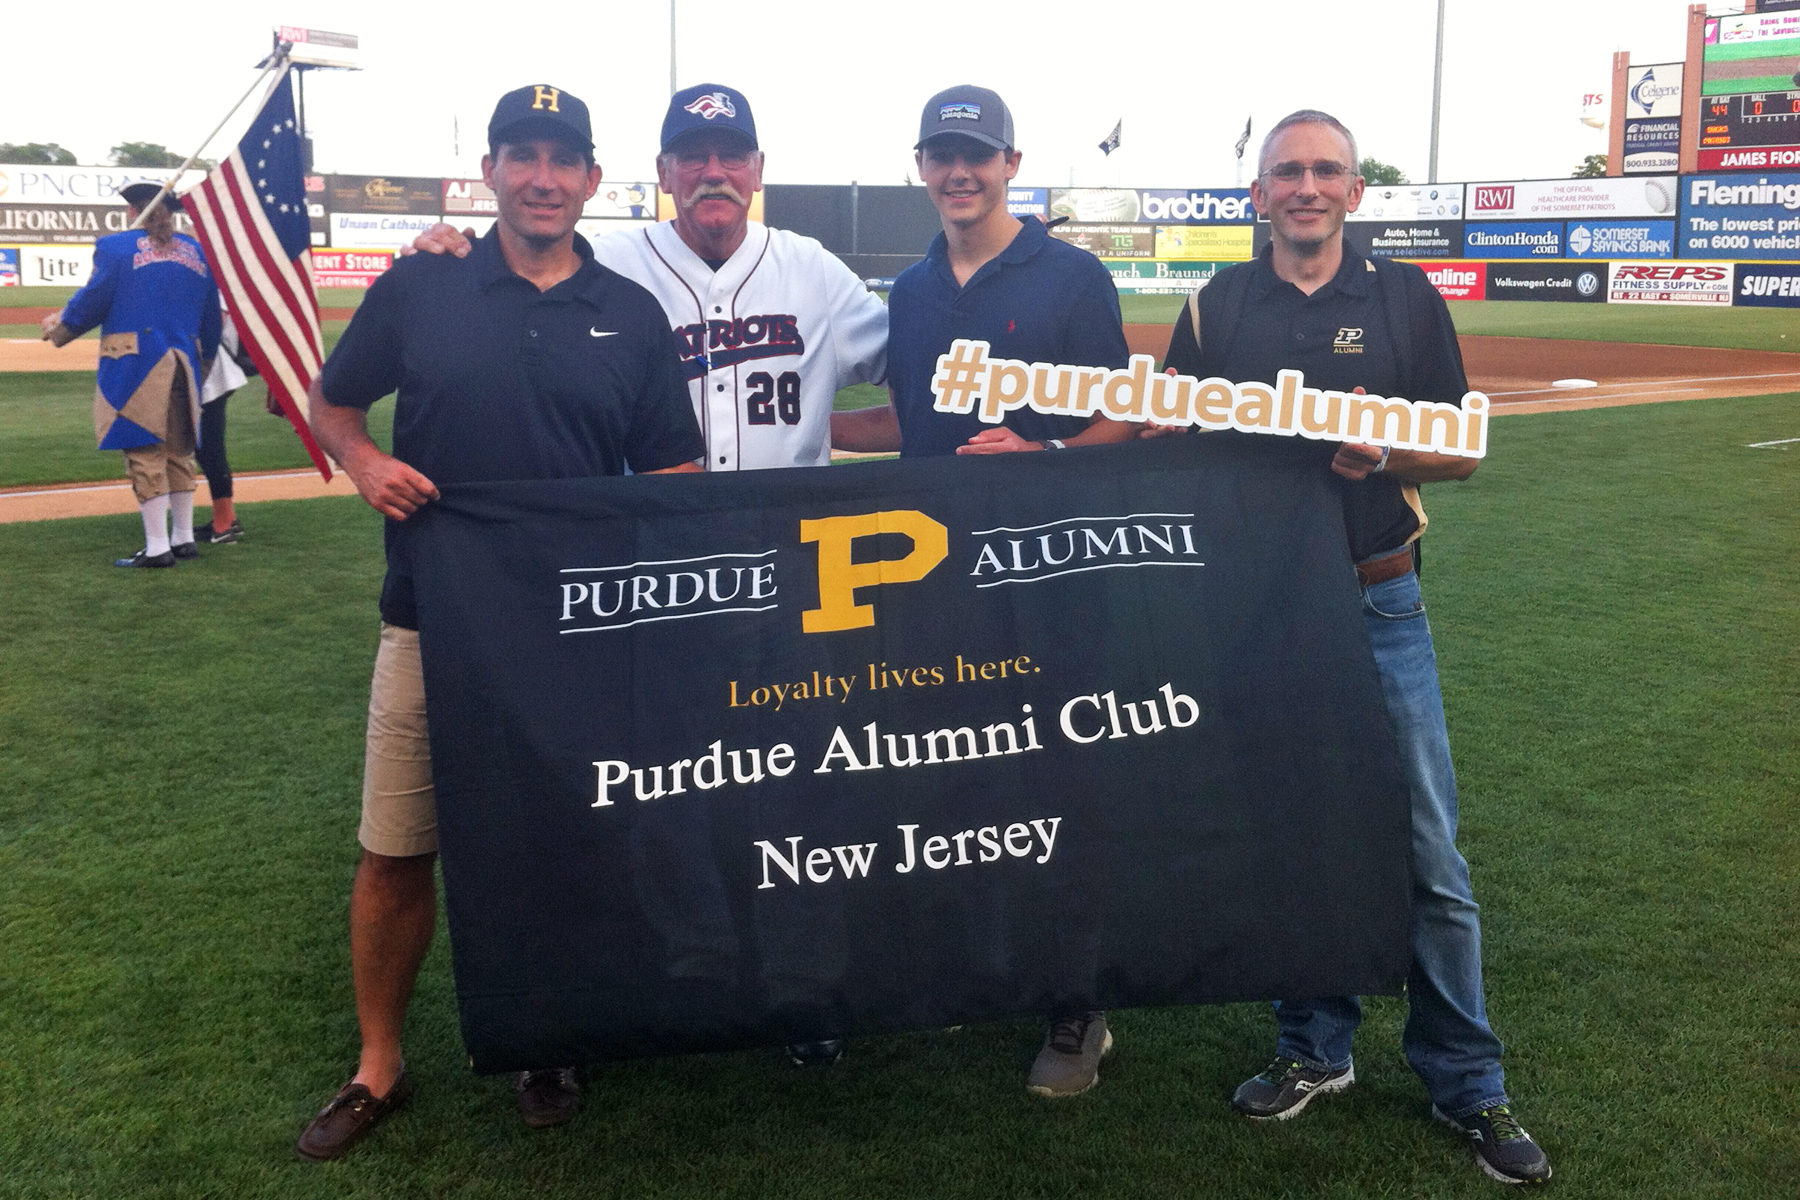 Purdue NJ threw out the first pitch at a Somerset Patriots ballgame in July 2015